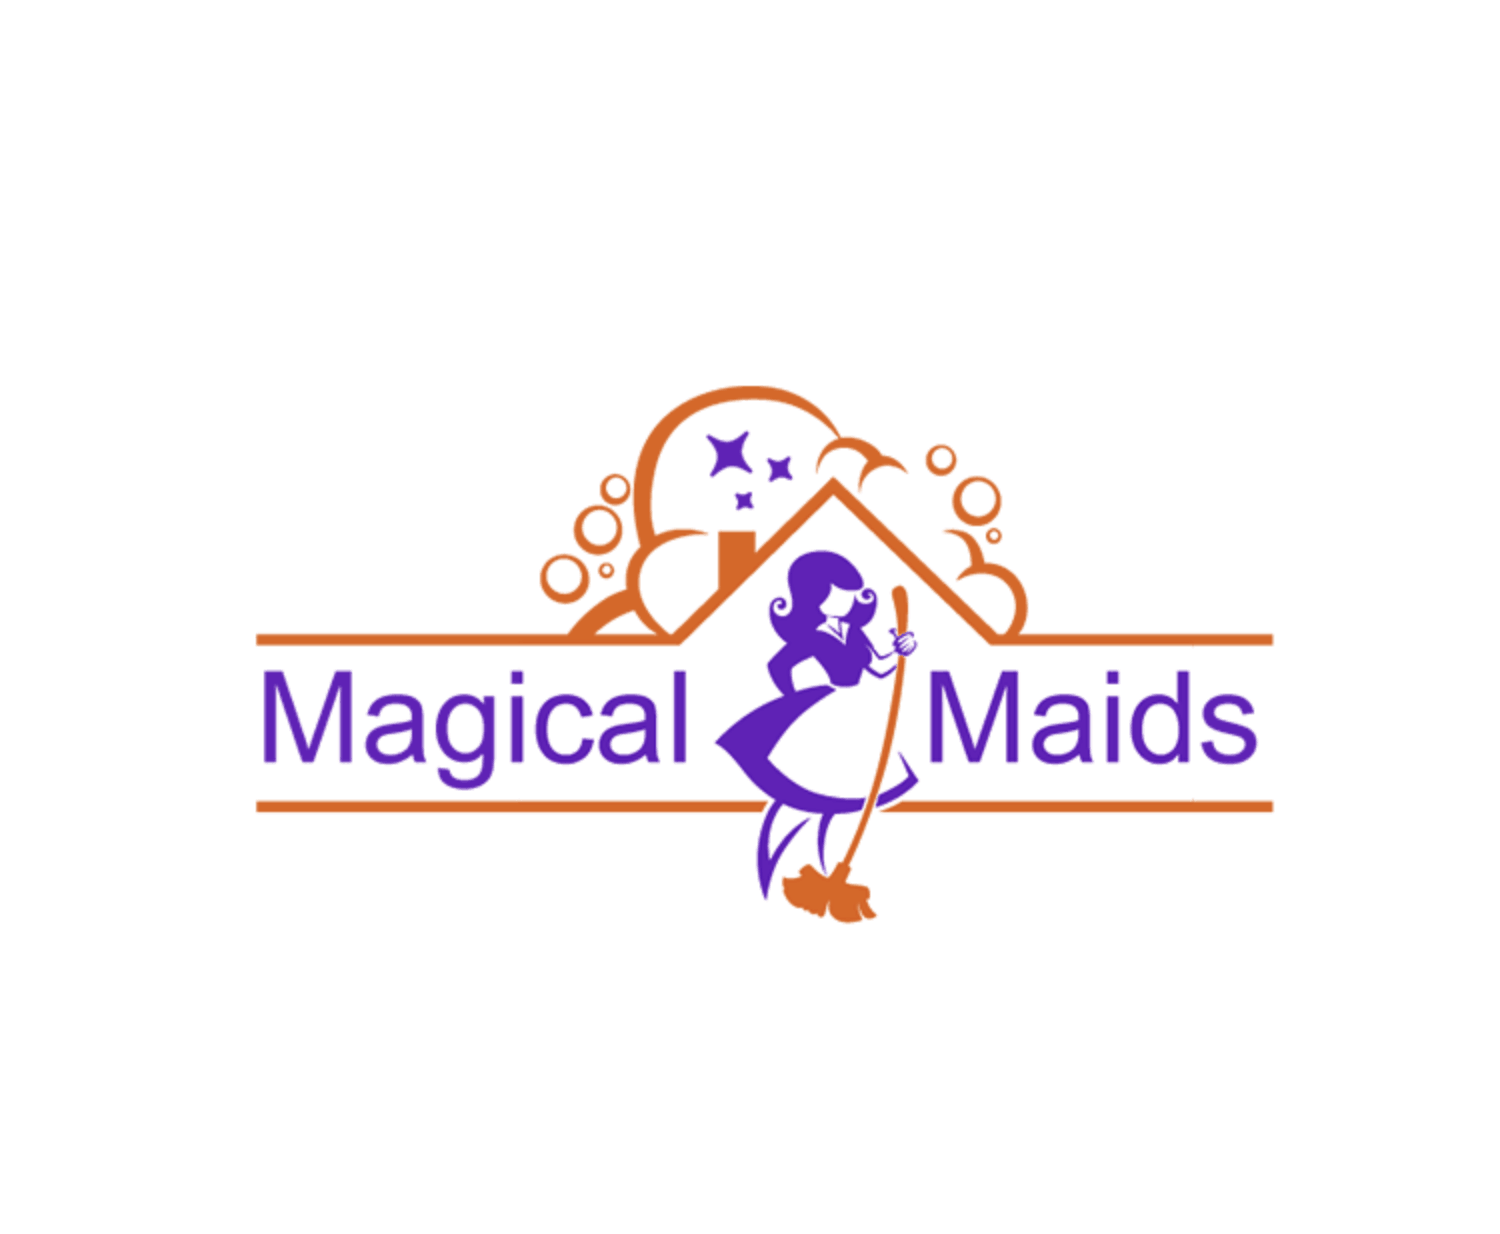 Tailored Logo-Magical Maids 로고